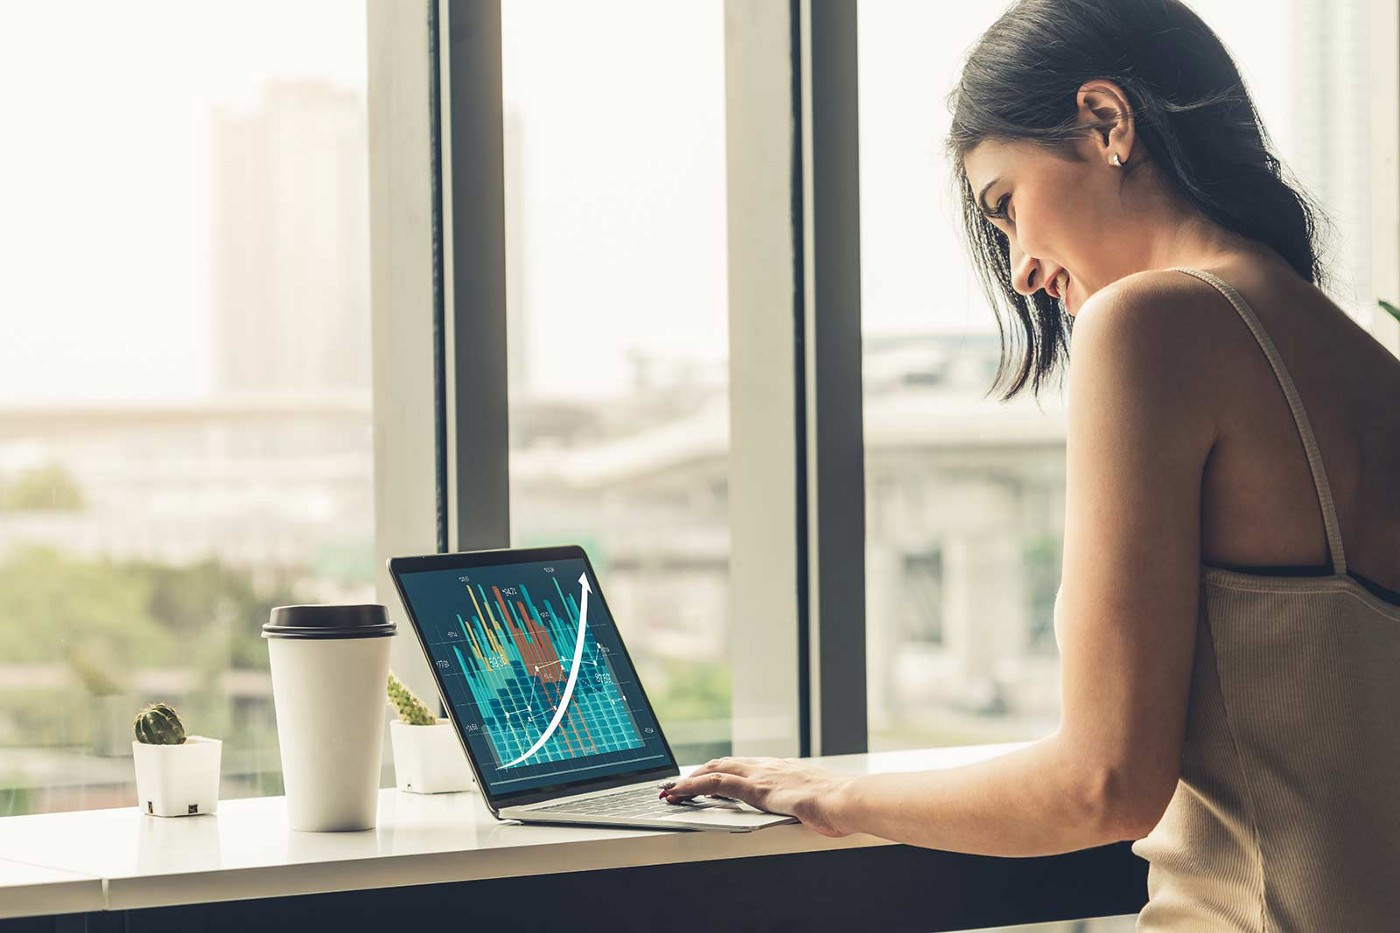 A woman reviews analytics on her laptop. A city landscape through the window is in the background.